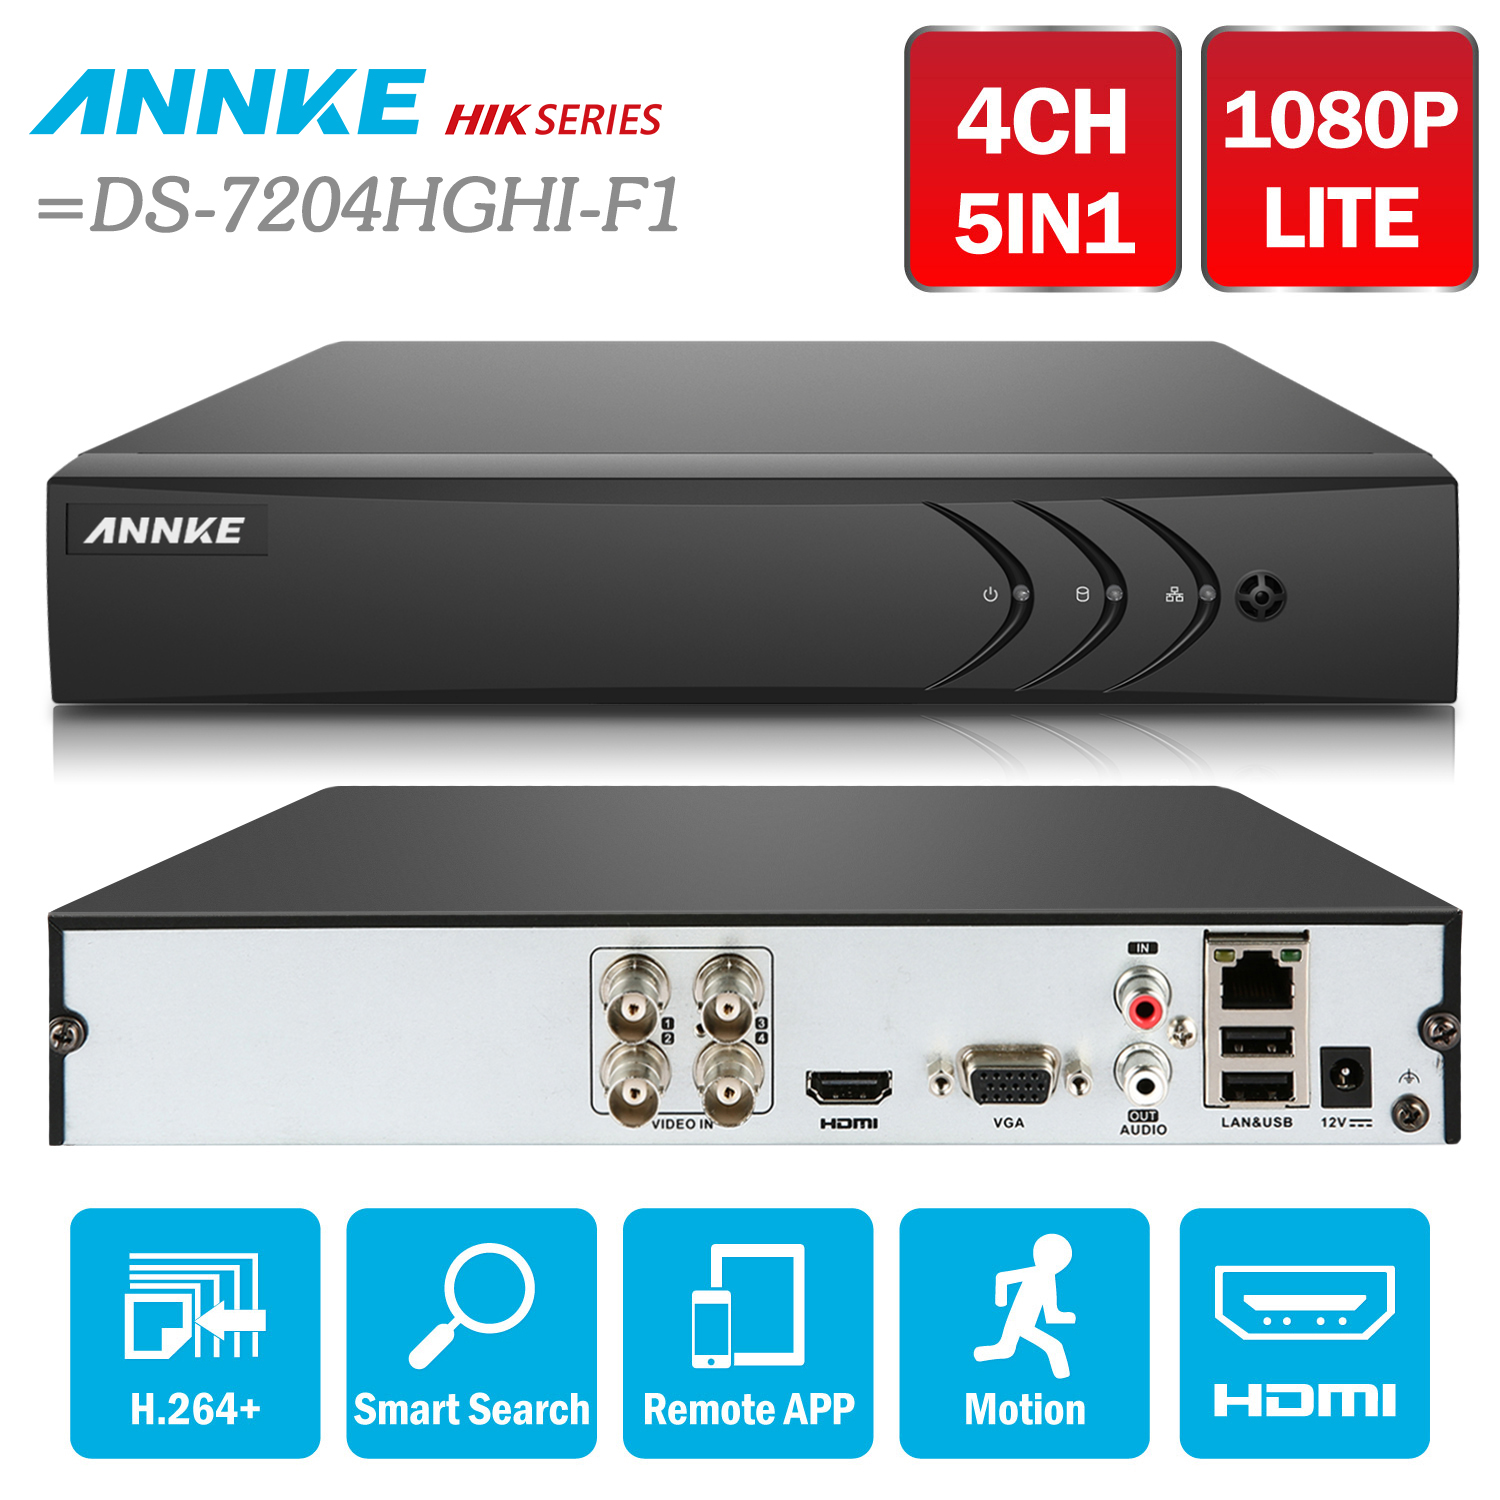 ANNKE 4CH 1080N 5in1 TVI CVI AHD Network DVR HDMI H.264+ DVR Video Recorder for Home Security Camera System =HIK DS-7204HGHI-F1 robotdigg bulldog extruder